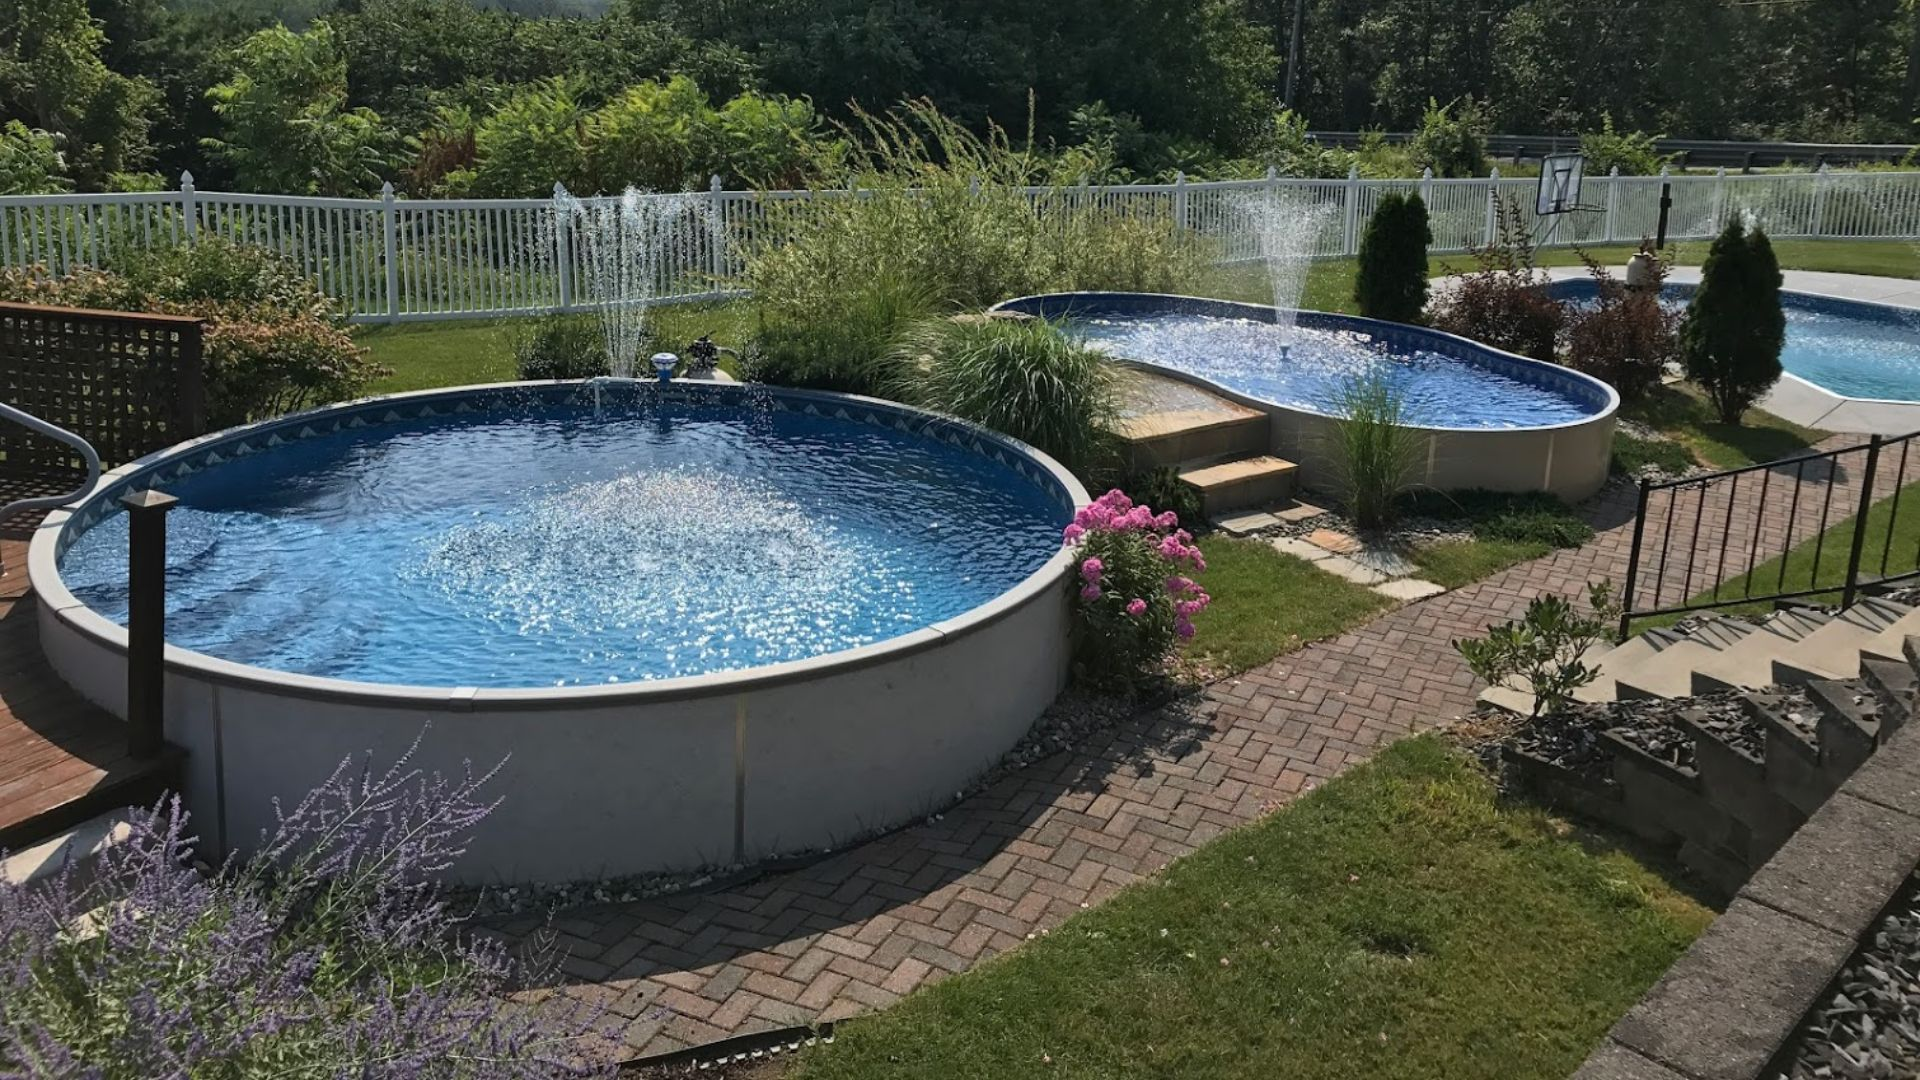 Landscaping Tips Around an Above Ground Pool